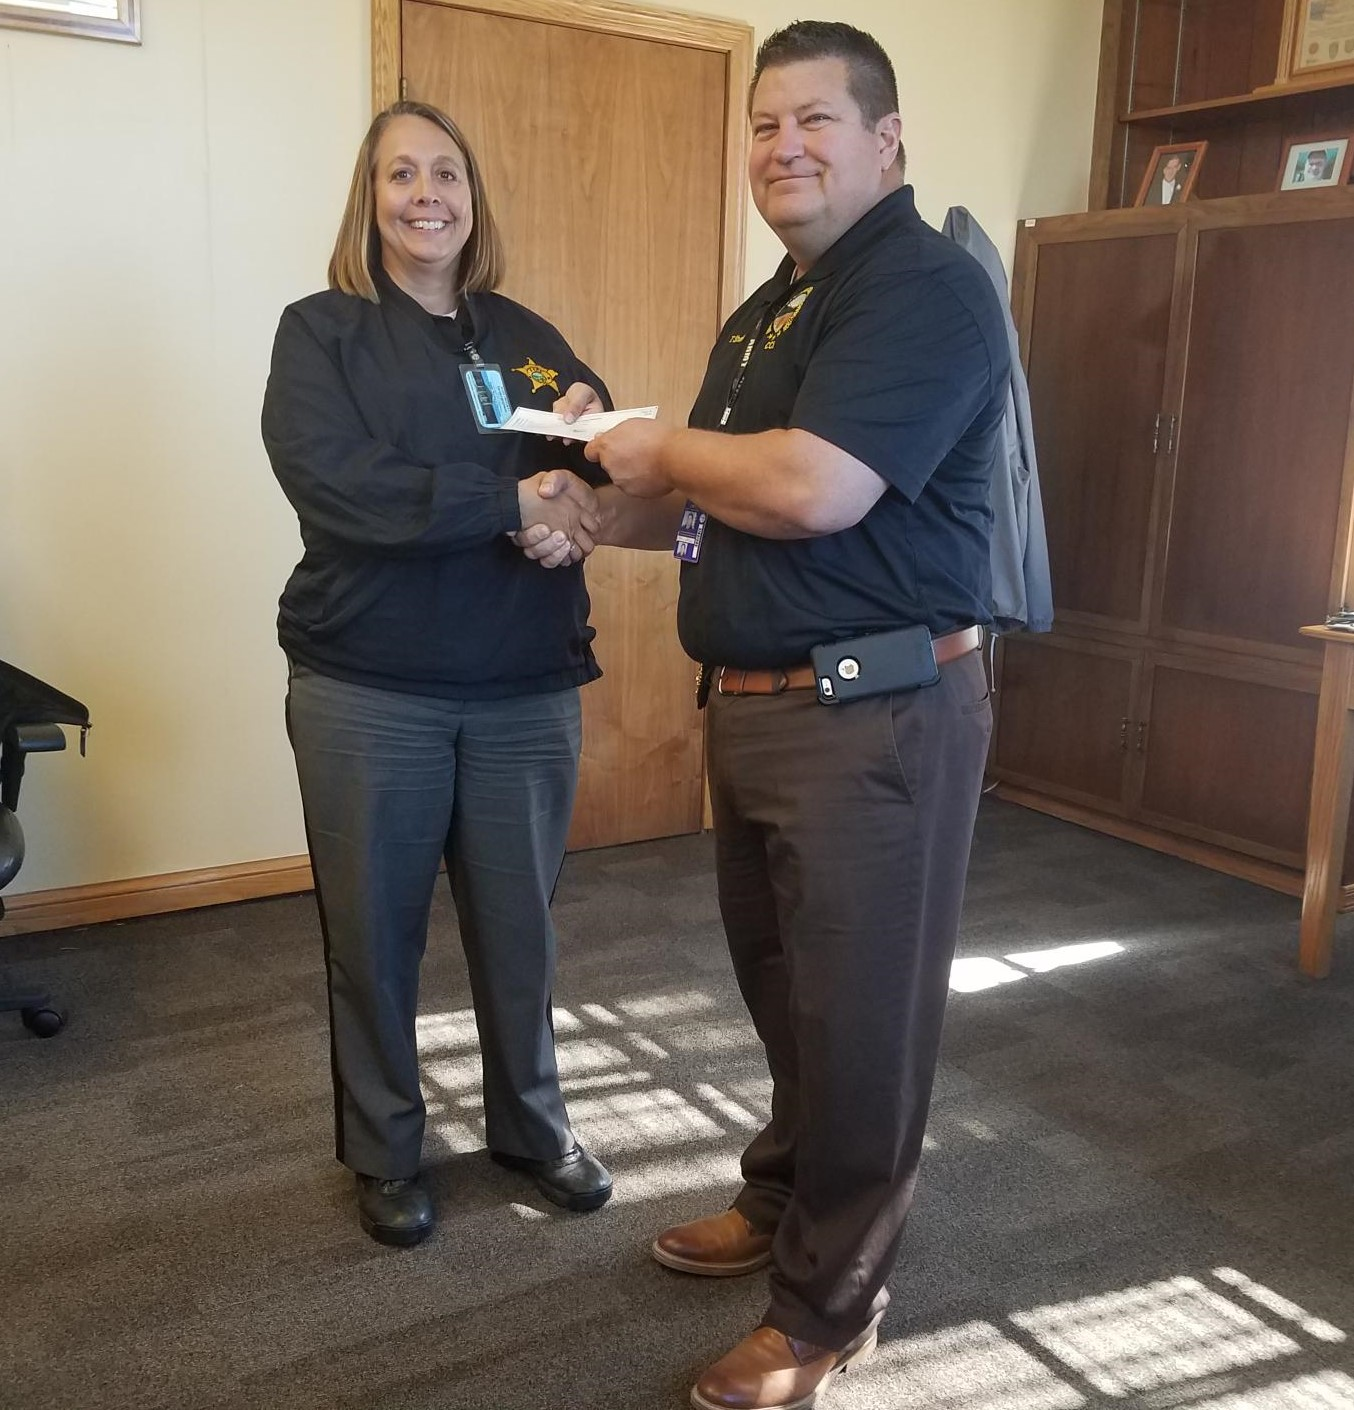 A Donation to D.A.R.E. From Chillicothe Correctional Institution